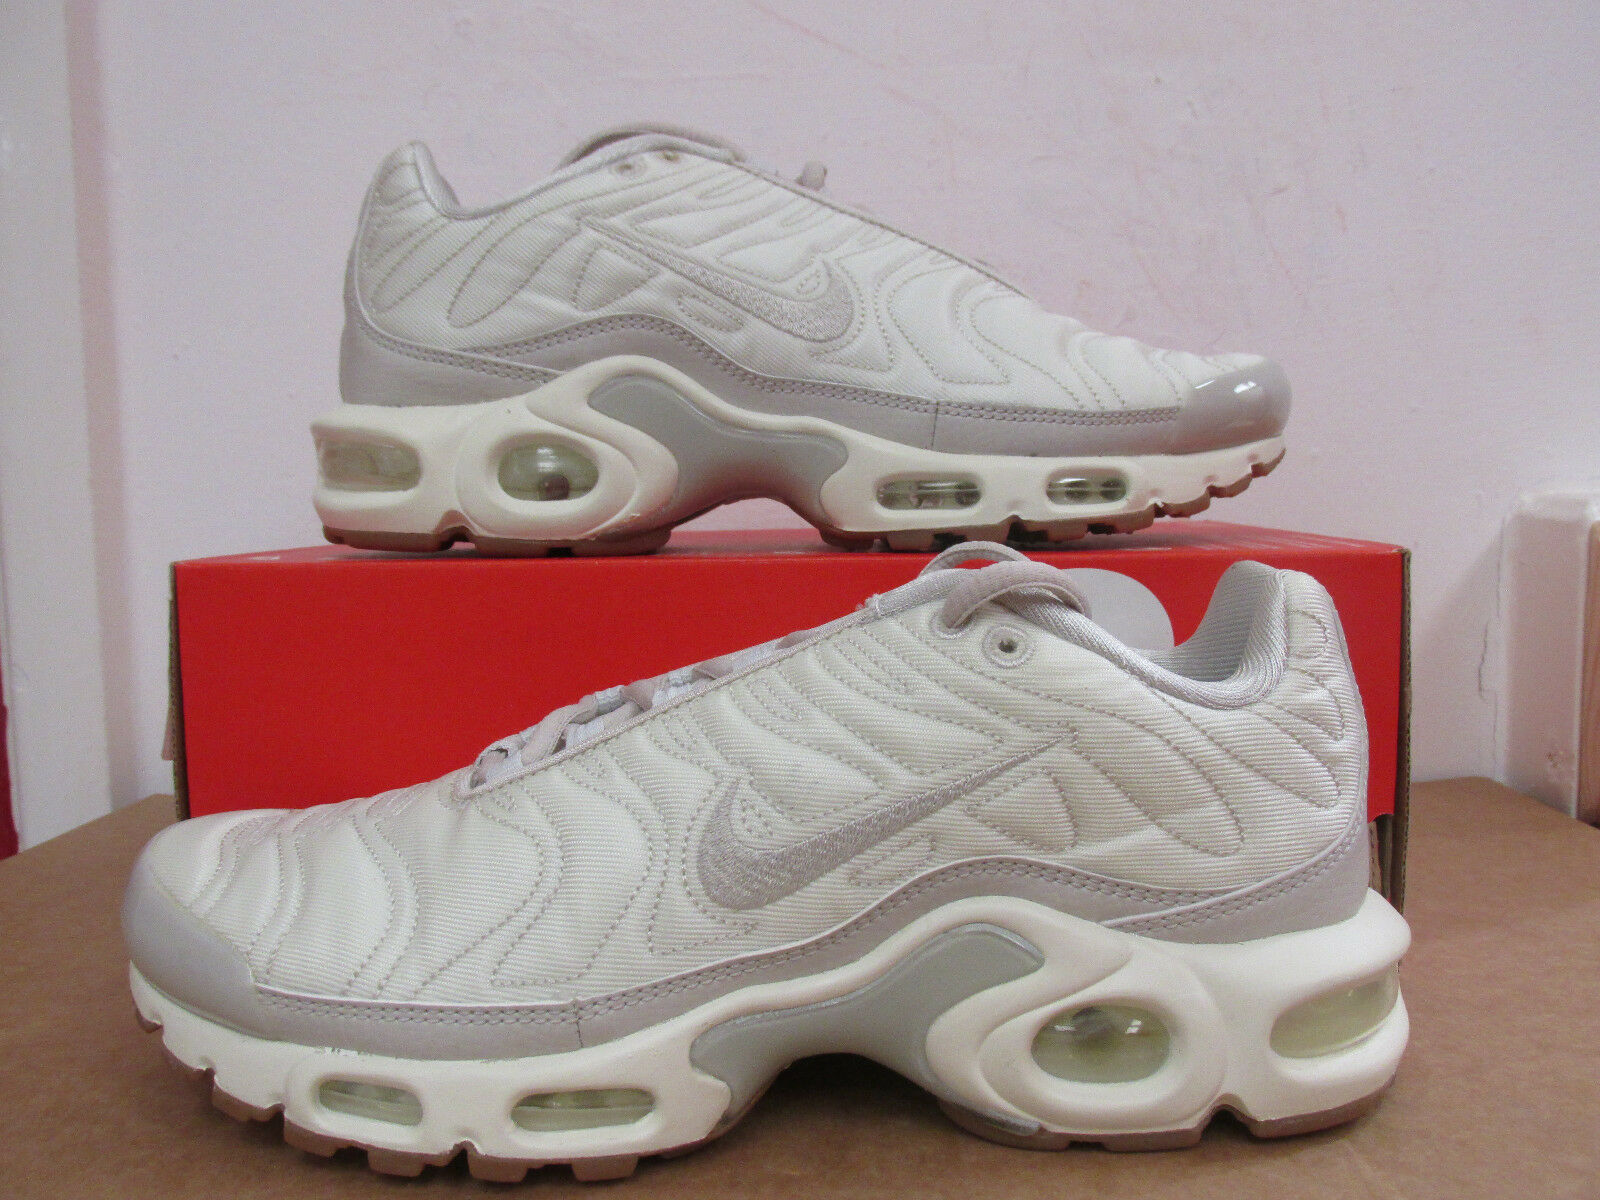 Nike Womens Air Max Max Max Plus PRM Running Trainers 848891 002 Sneakers Shoe CLEARANCE 94e1a5